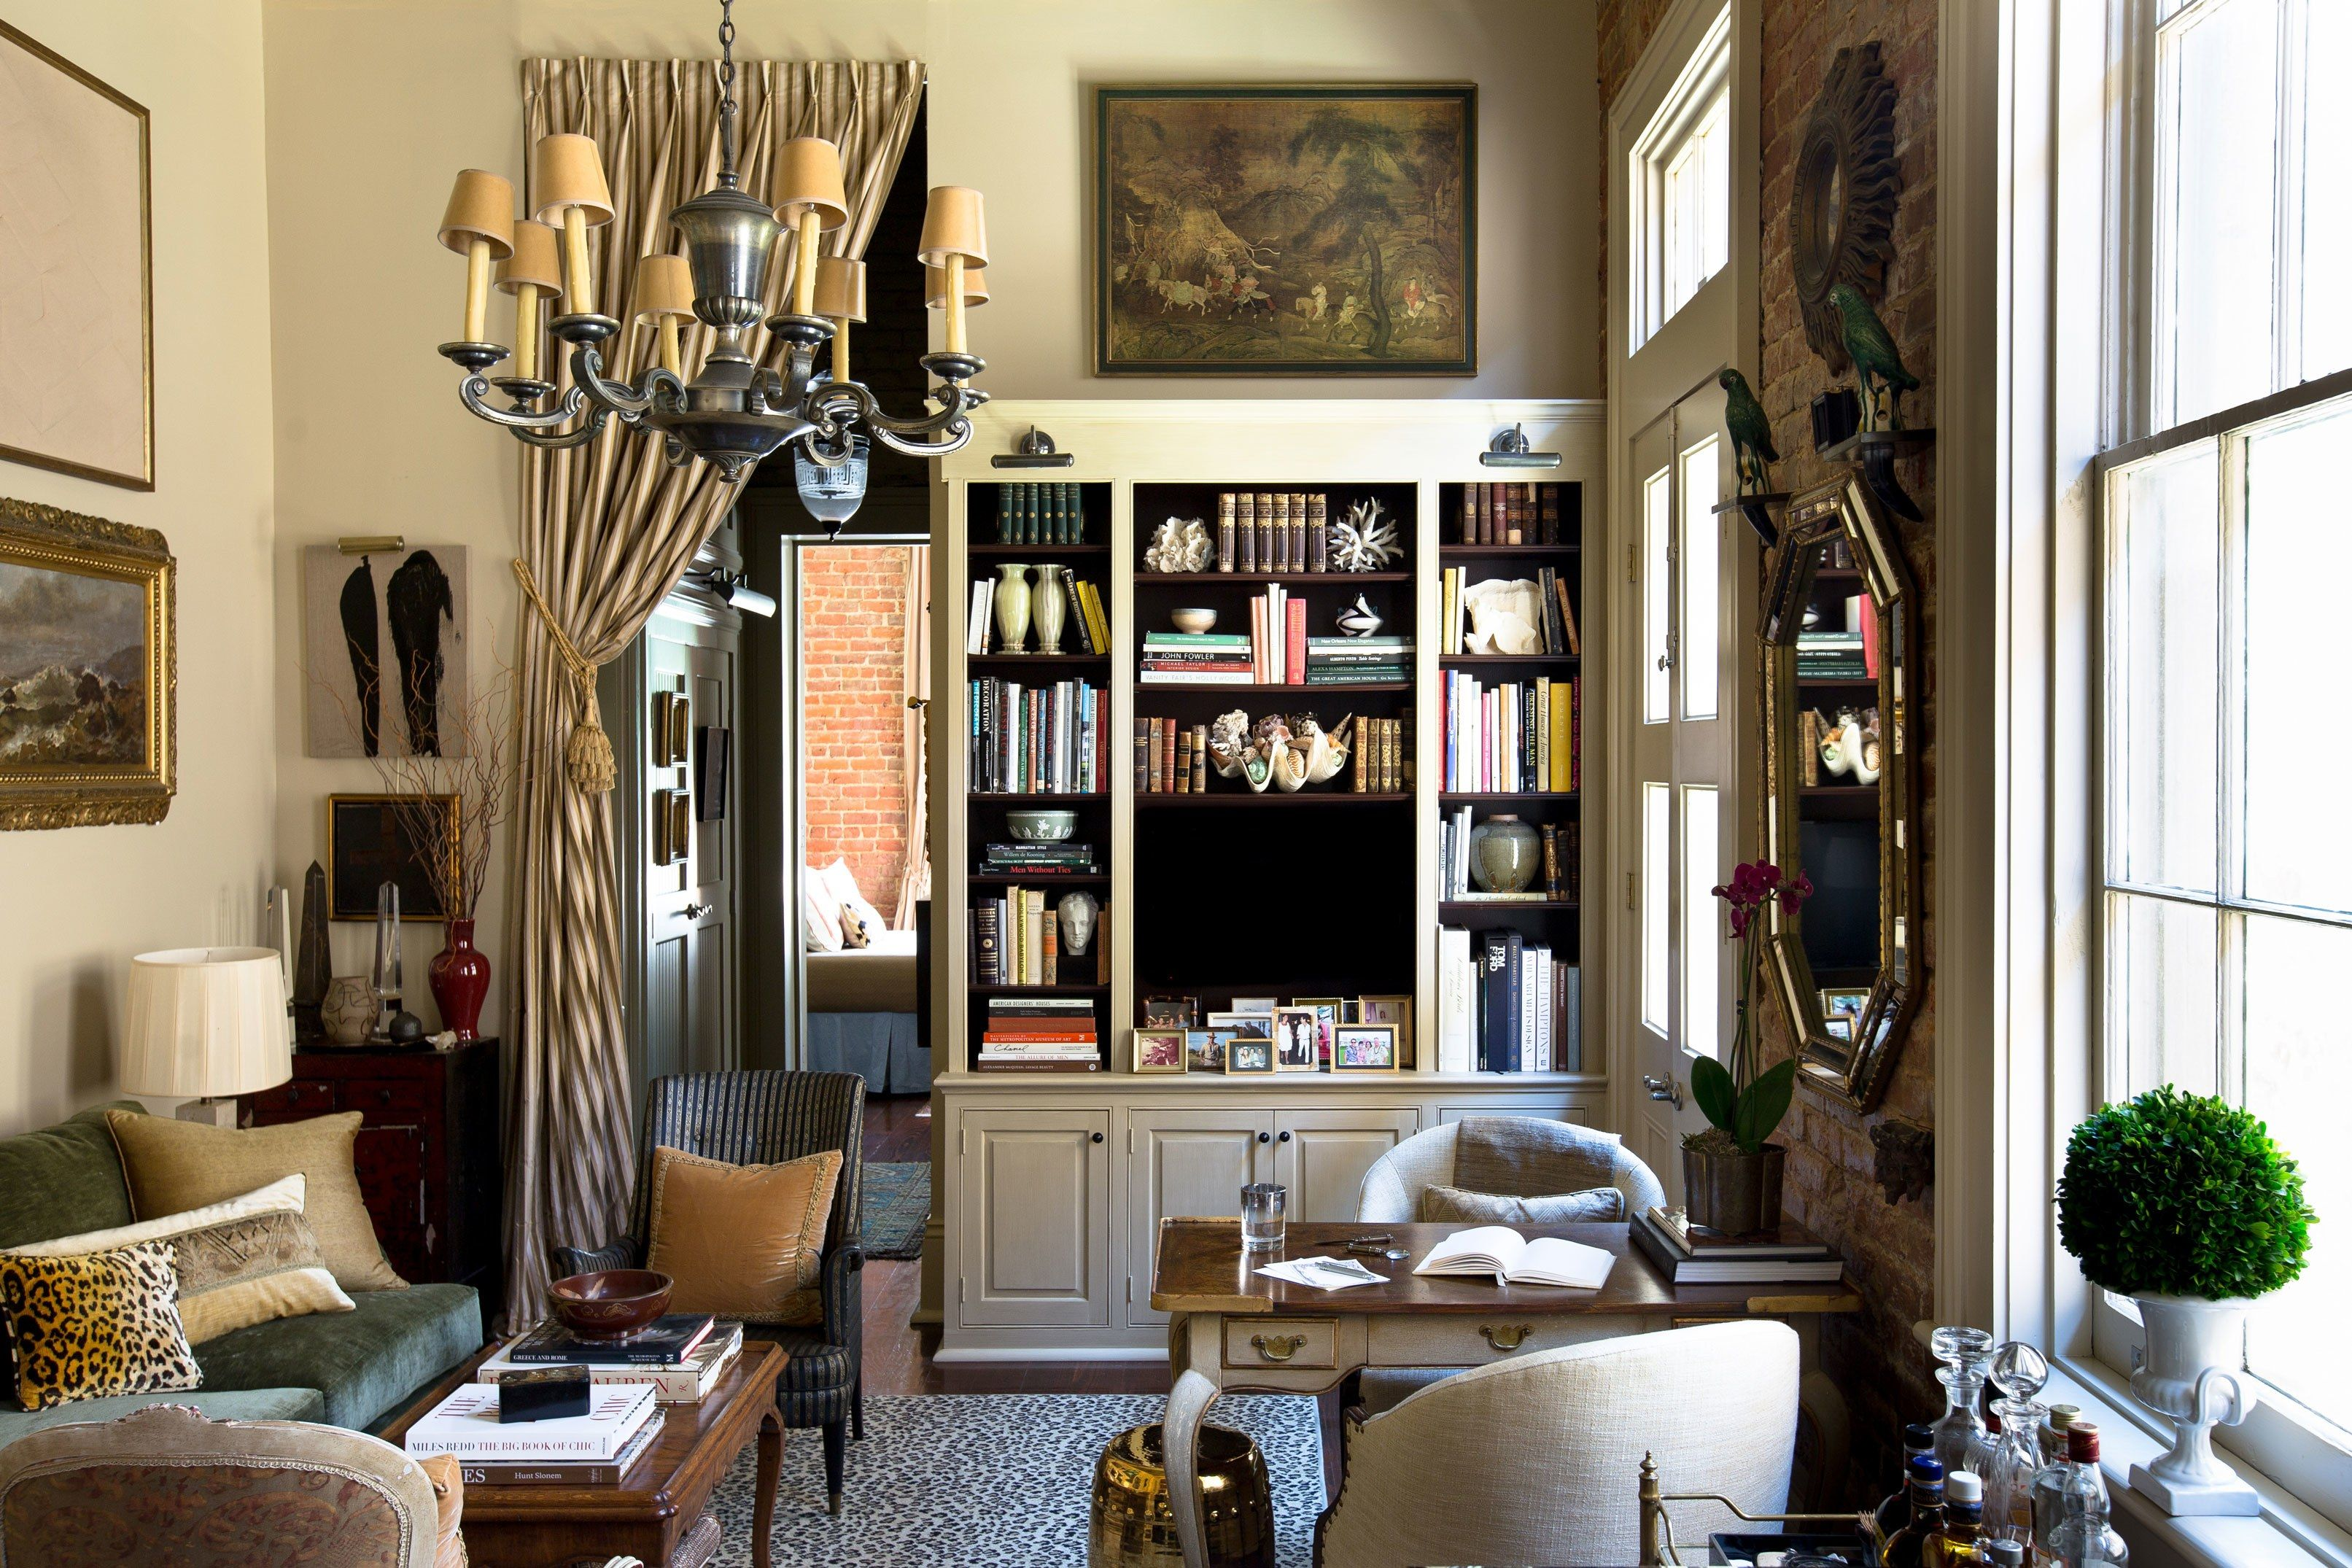 Designer Chad Graci turns his 650-square-foot condo into a sumptuous salon with character and patina